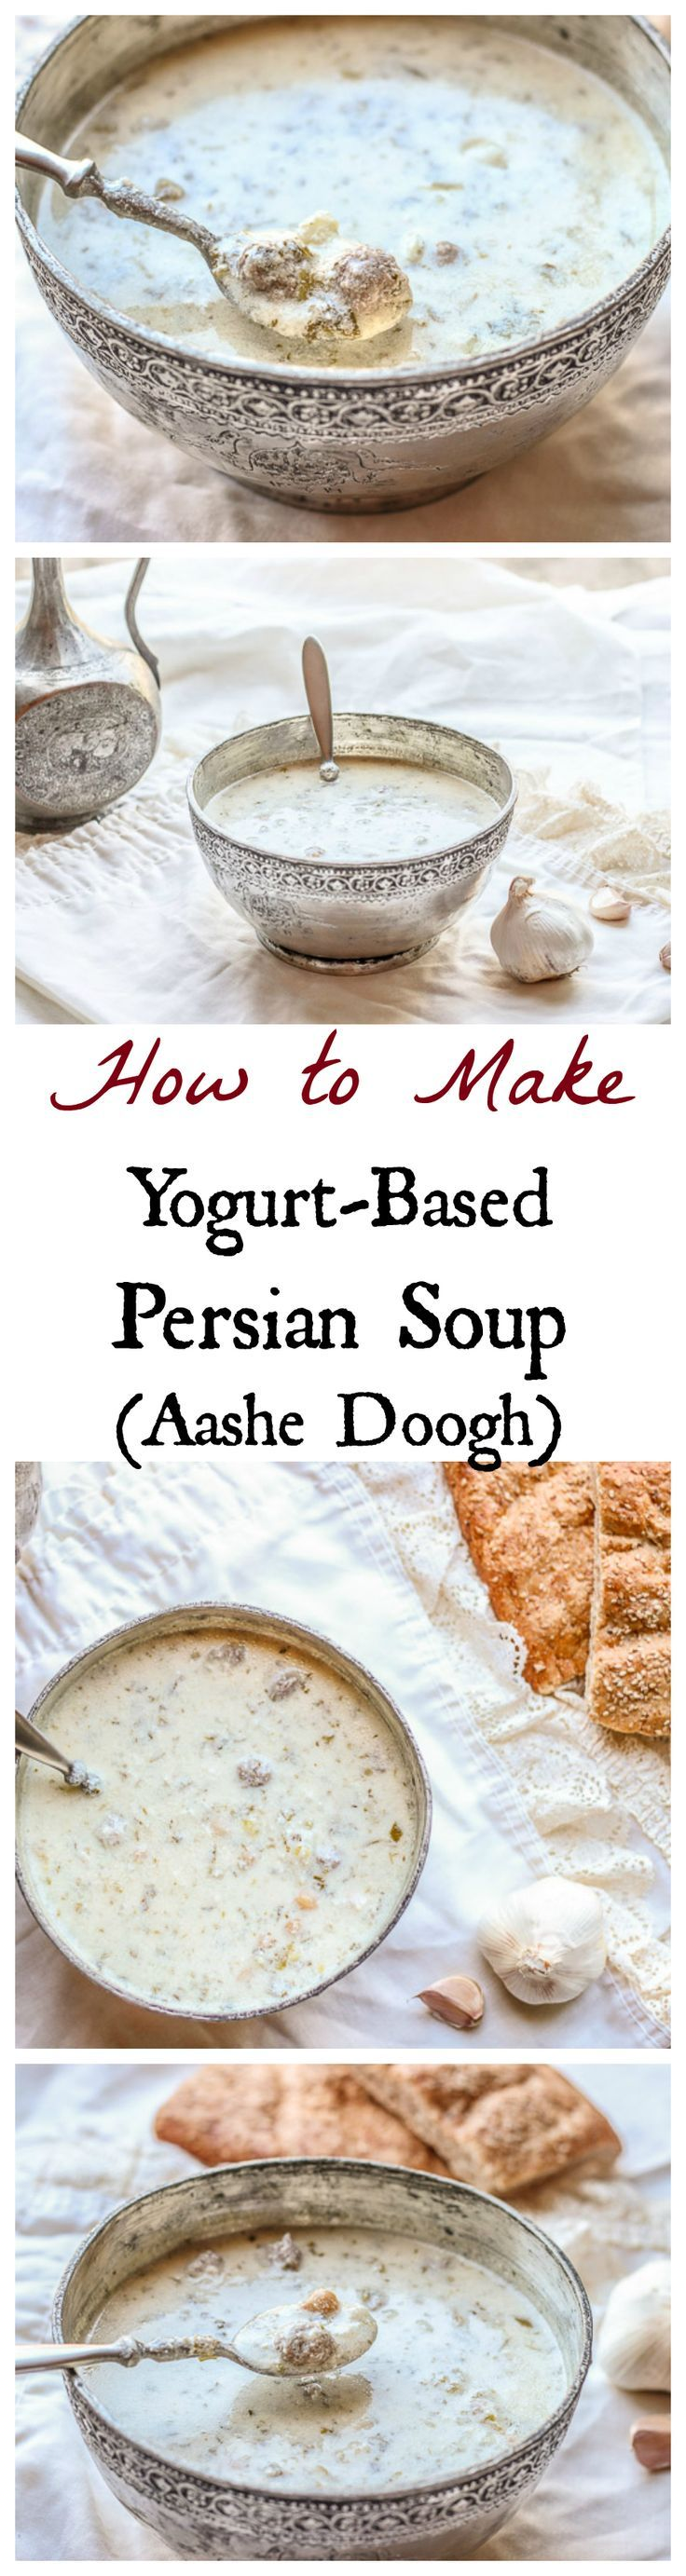 872 best persian food culture images on pinterest antipasto aashe doogh a delectable yogurt based persian soup forumfinder Images